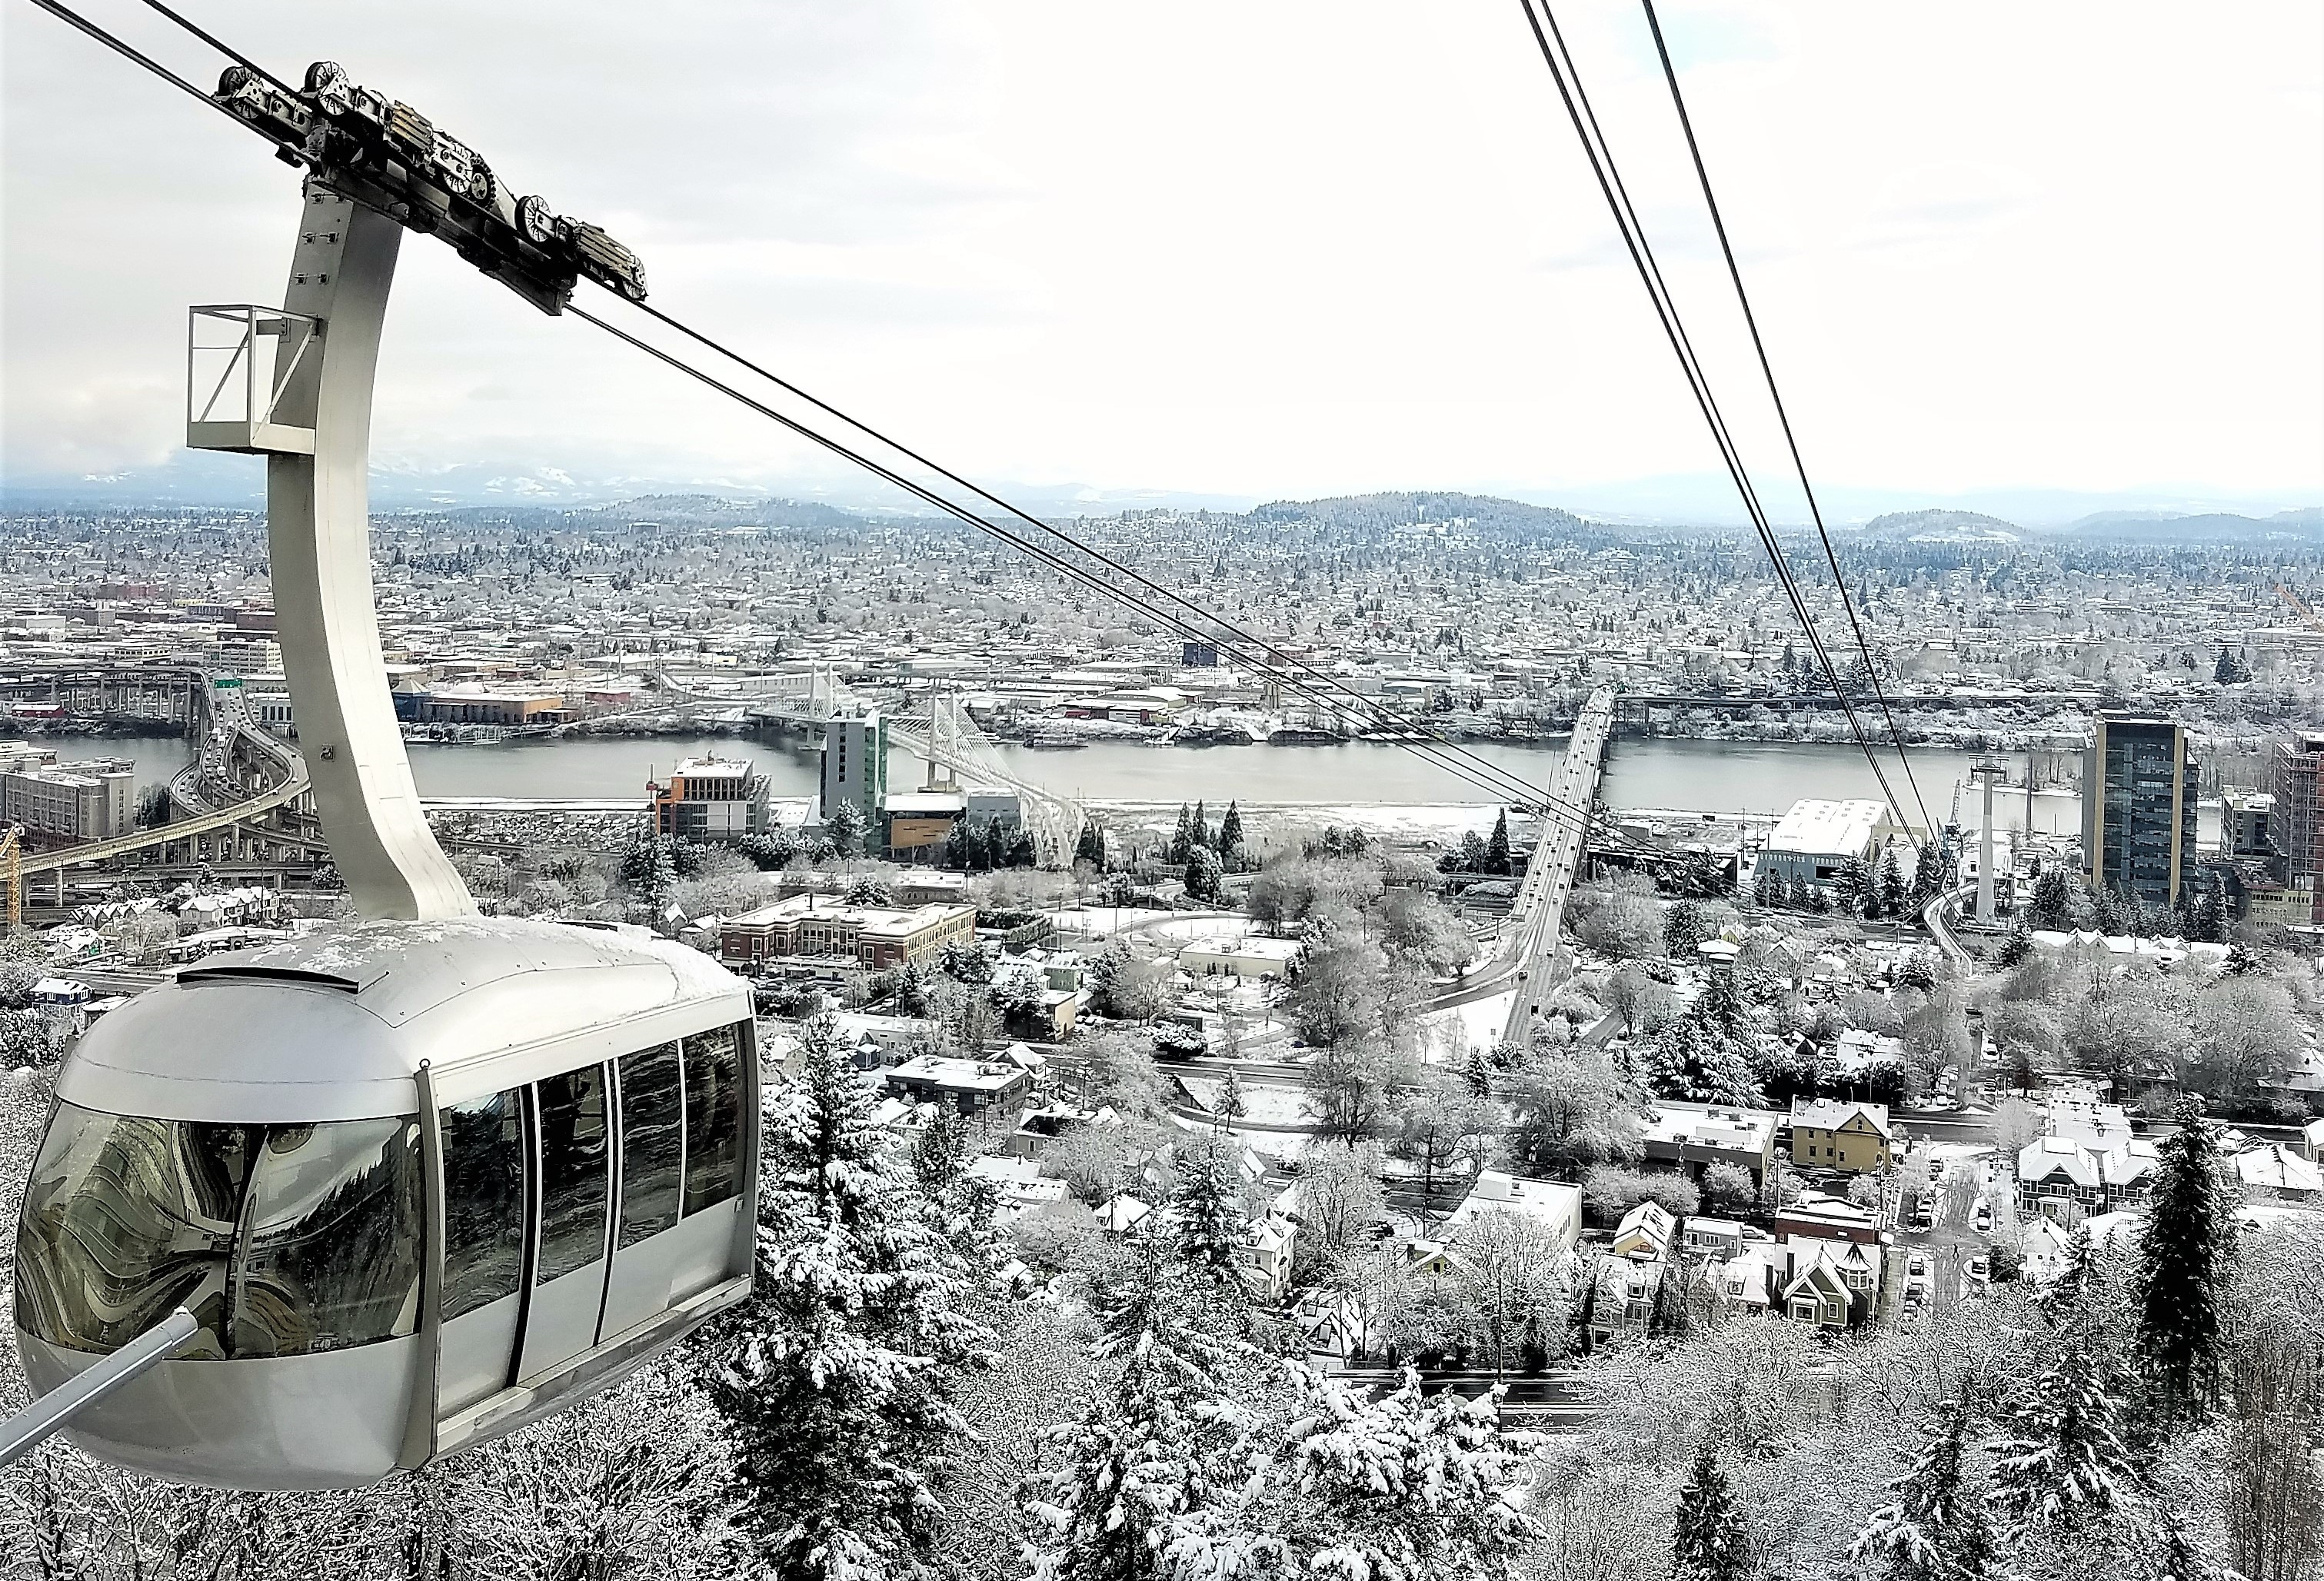 Portland Aerial Tram arriving at the upper deck with a backdrop of the entire city covered in snow.